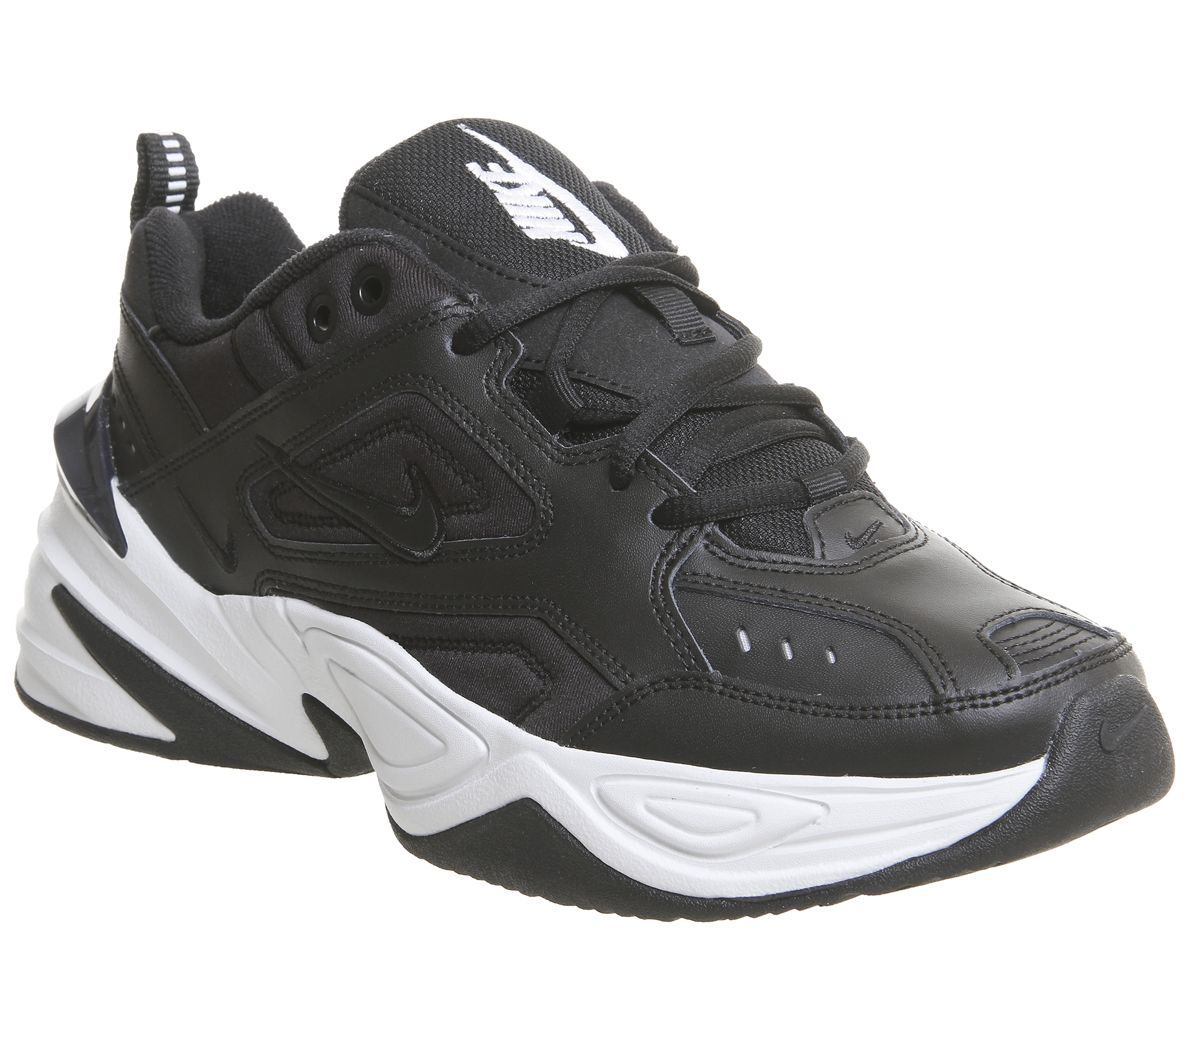 competitive price 3d9fd e308e Nike M2k Tekno Trainers Black White F - Hers trainers